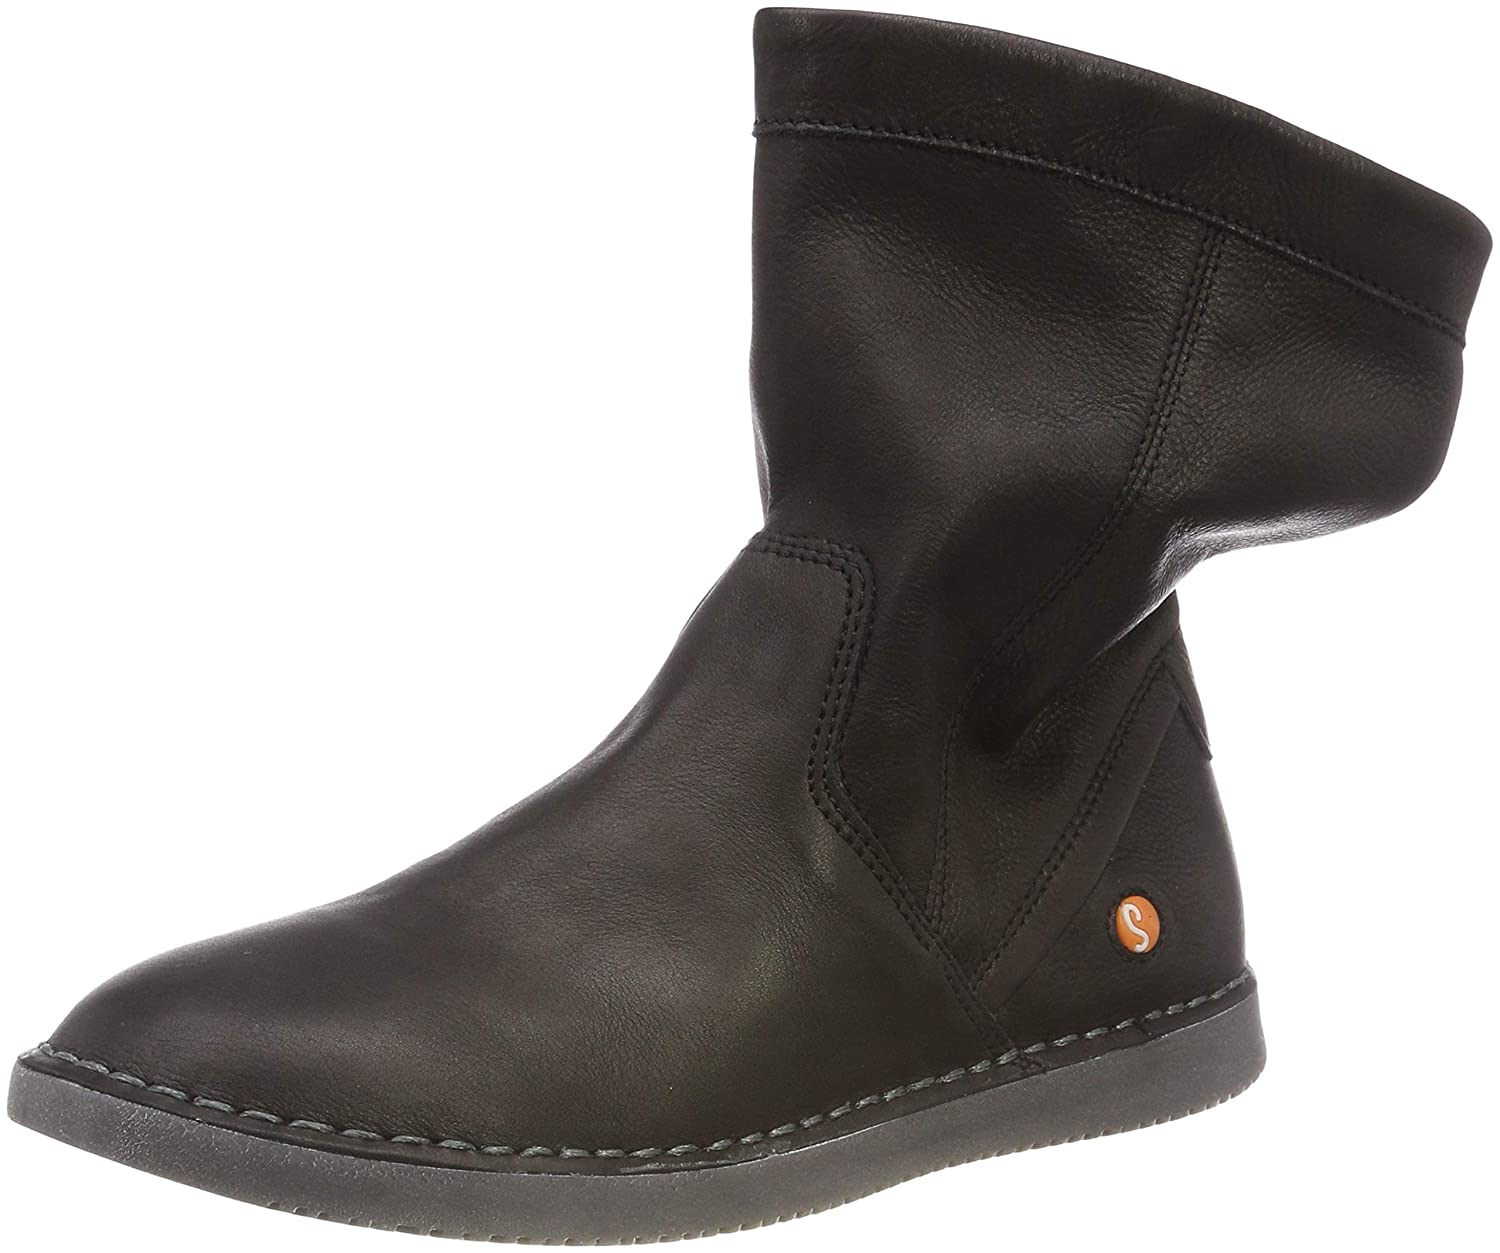 Softinos Til402sof Smooth Leather, Chukka Boots Boots Femme Noir 1191 (Black Noir 008) 1be50a2 - latesttechnology.space